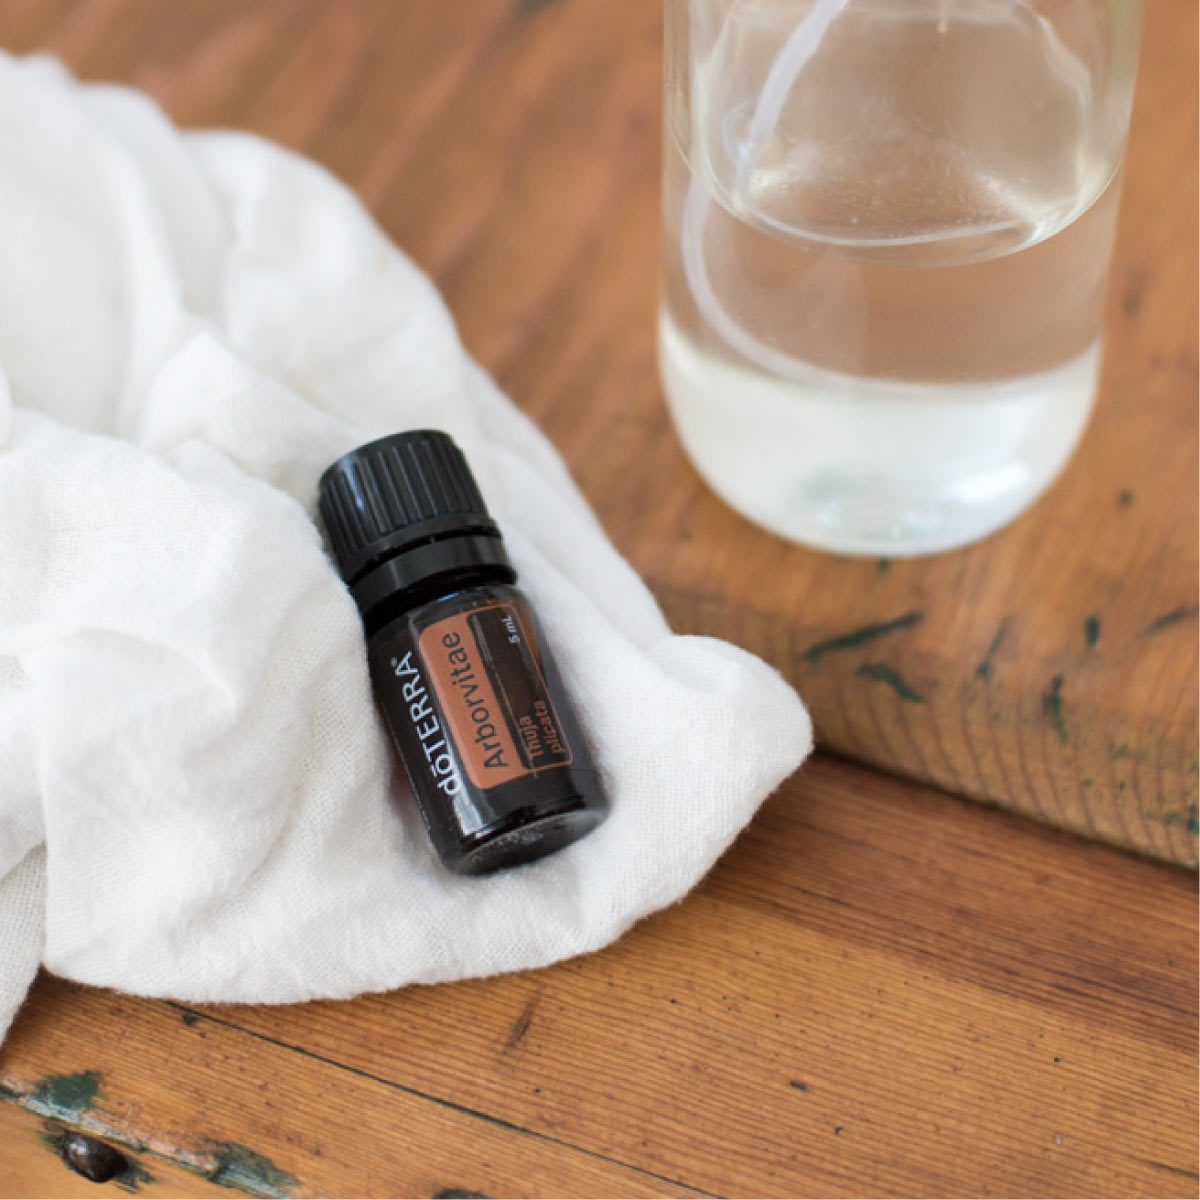 There are many ways to use Arborvitae oil. Arborvitae essential oil can be used to preserve wood, cleanse the skin, and promote calm feelings.